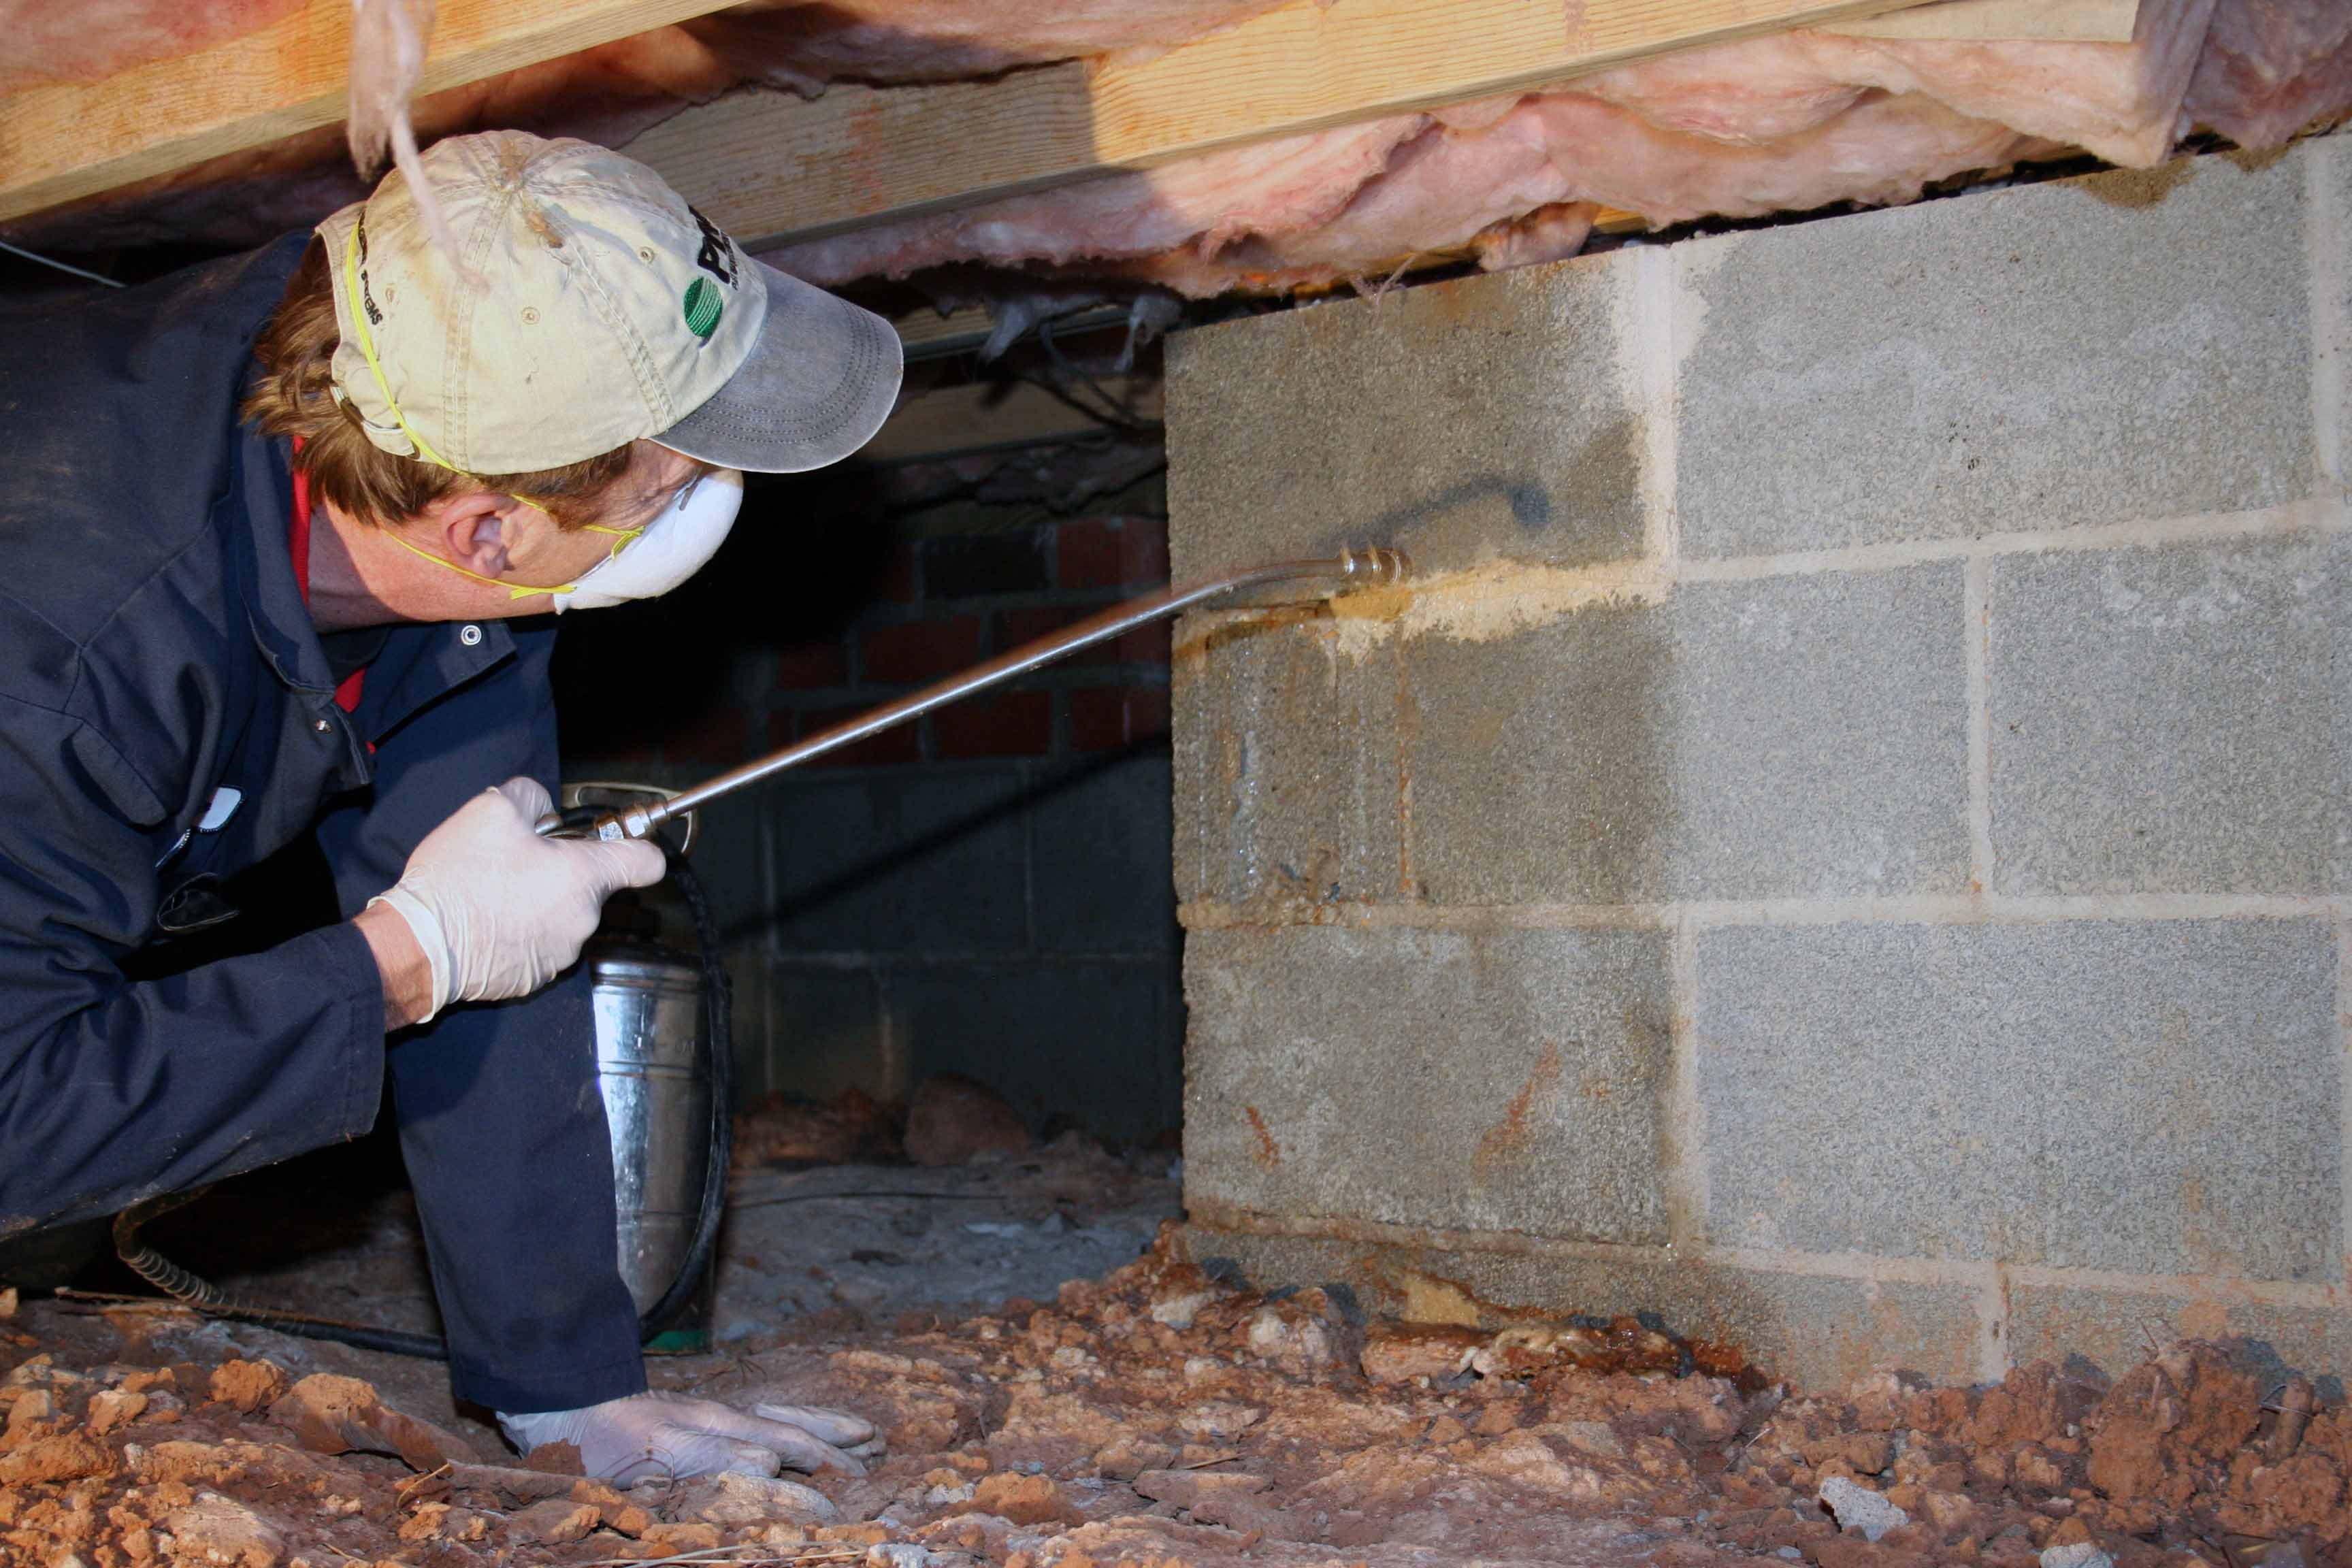 Crawl Space Cleaning Amp Odor Control Crawlspace Depot